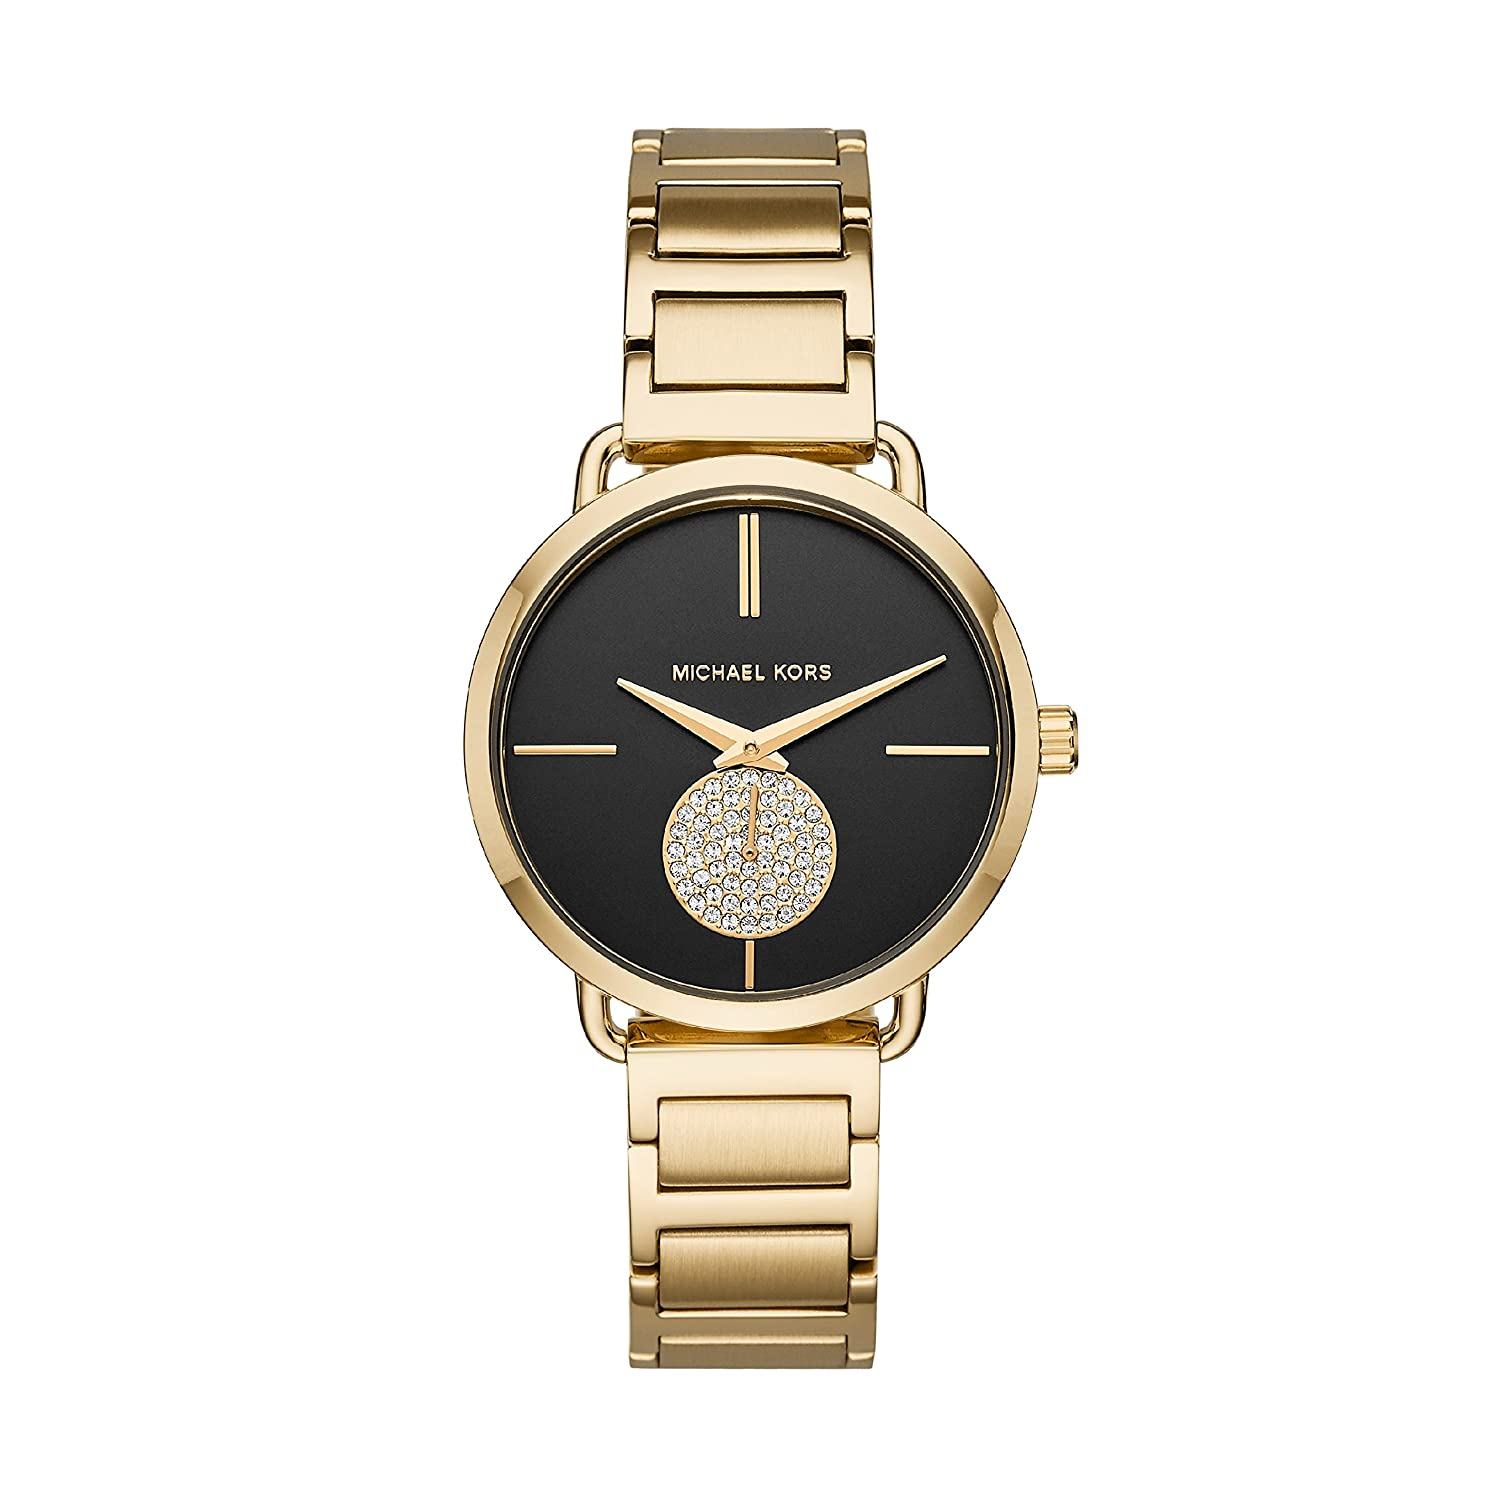 genial michael kors uhr gold gr n schmuck website. Black Bedroom Furniture Sets. Home Design Ideas